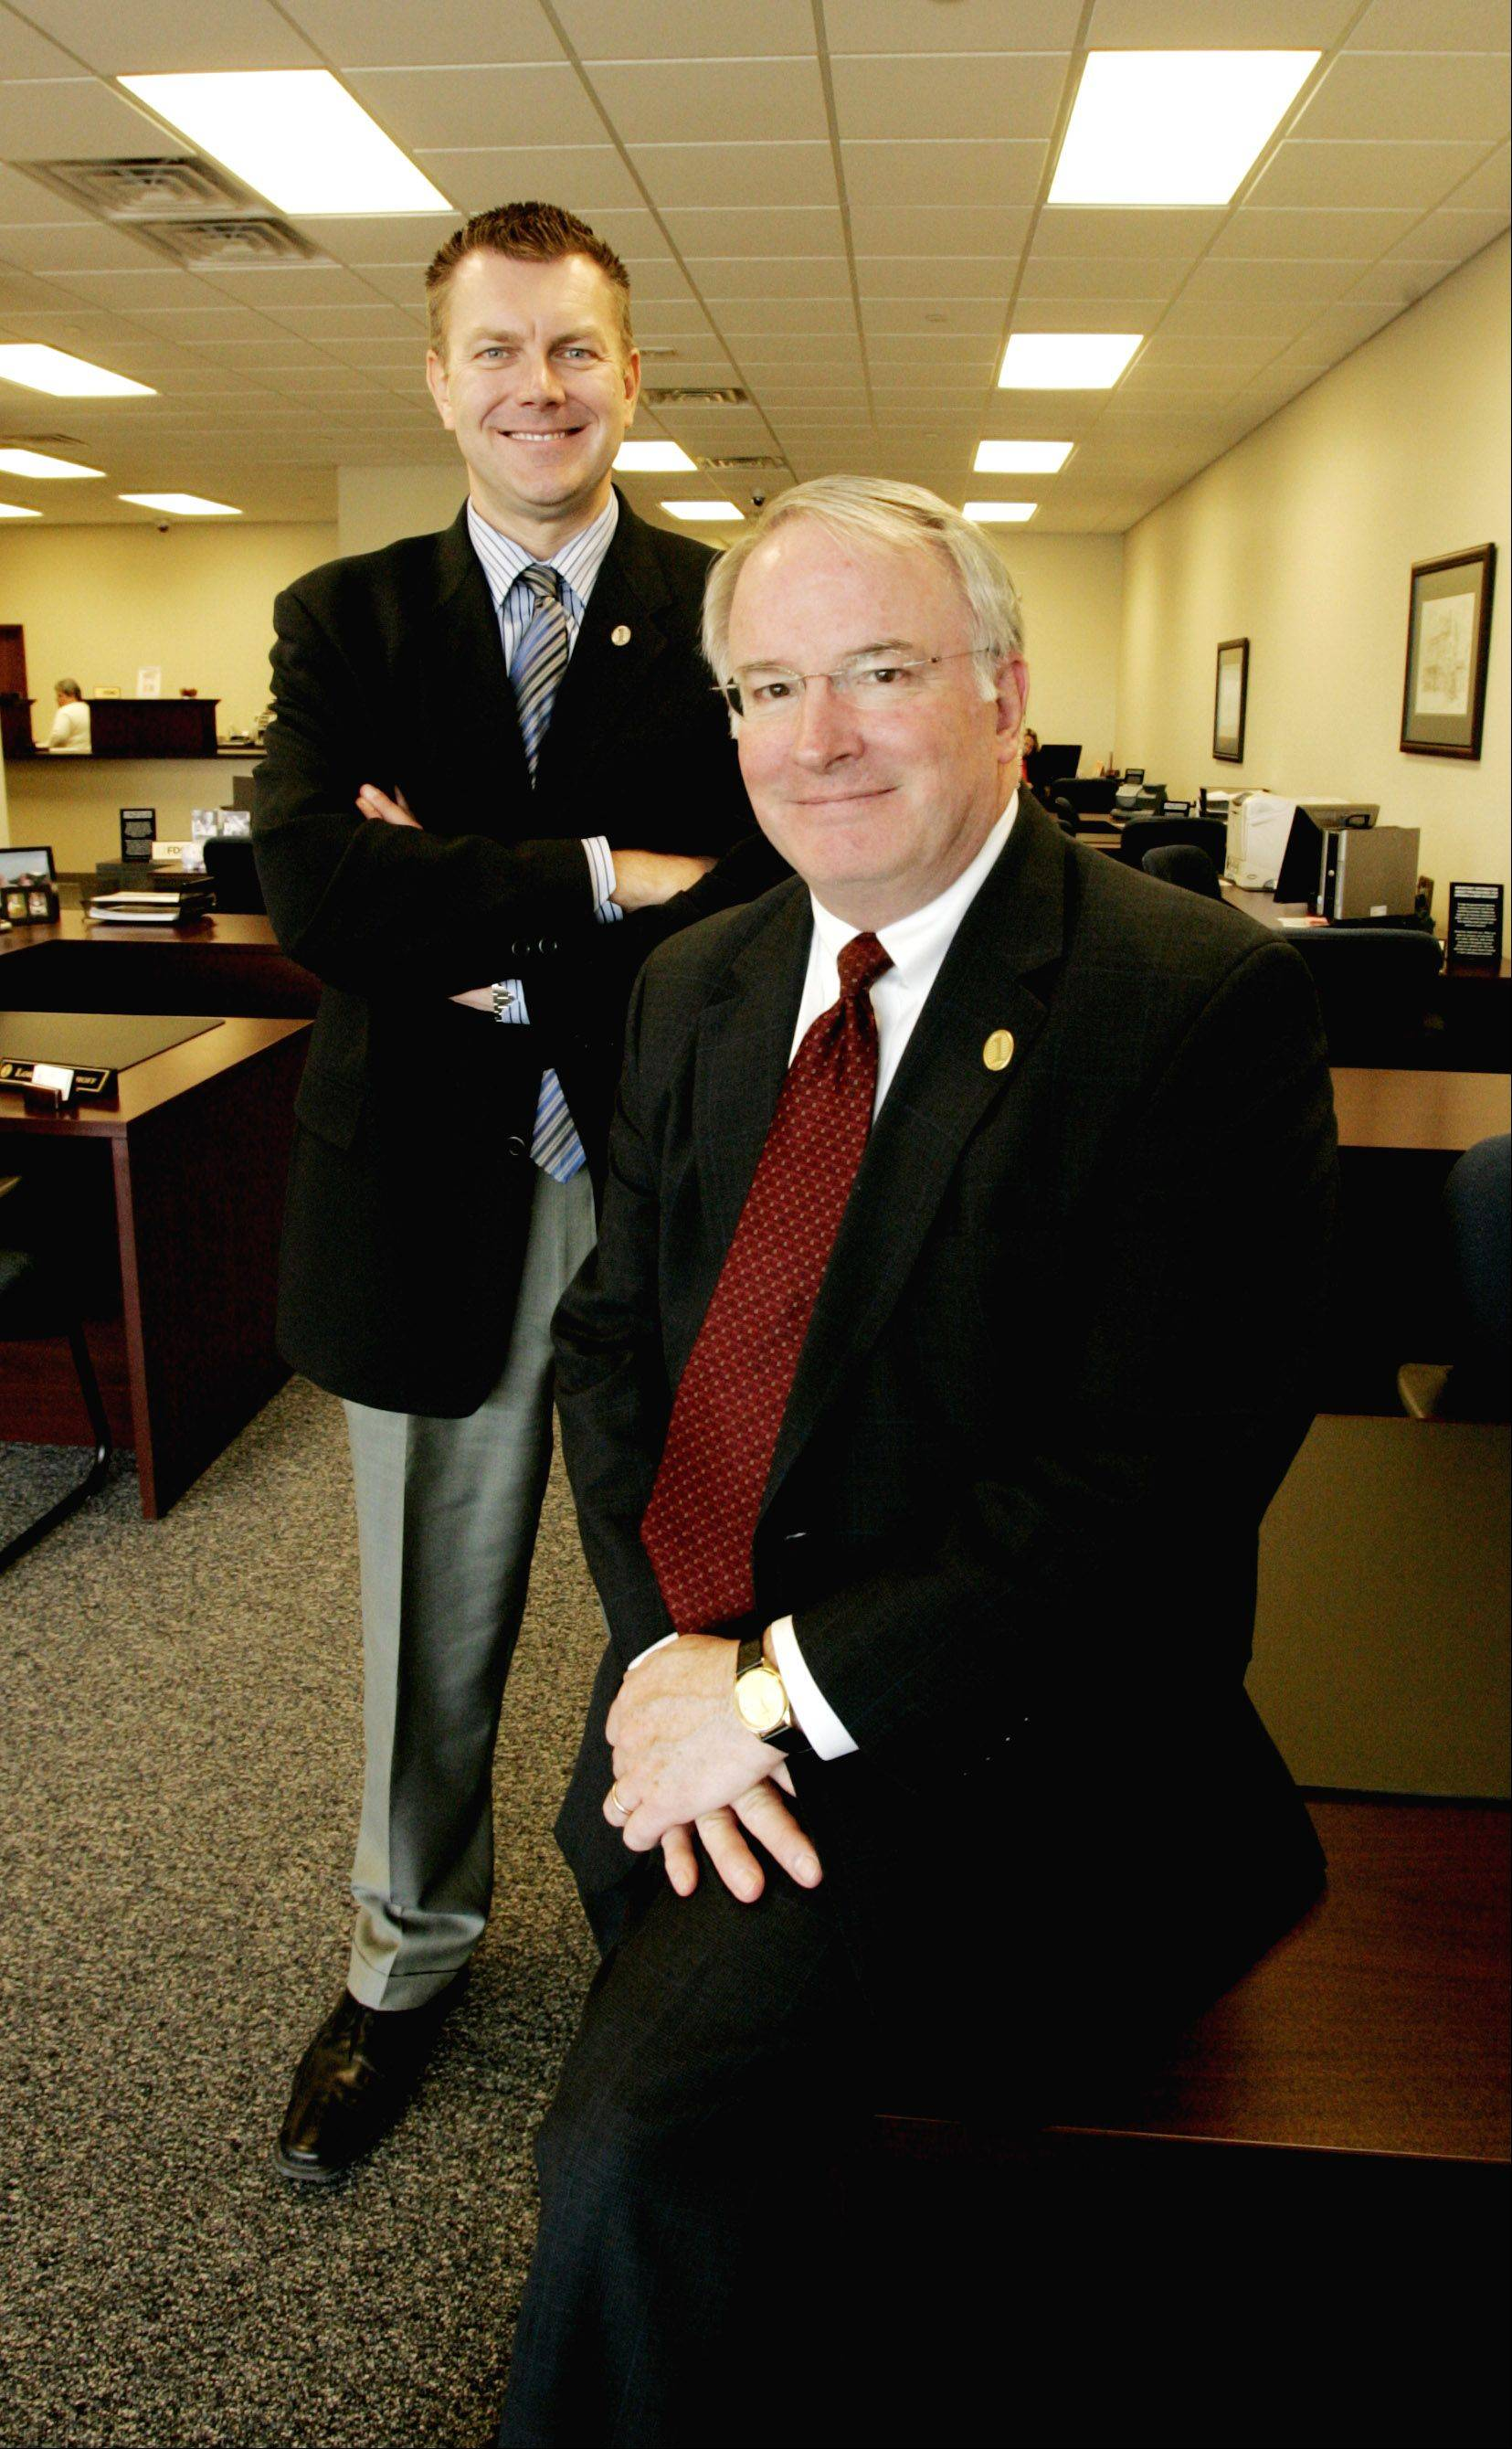 Scott Wehrli, left and First Community Bank President J. Patrick Benton helped to open the bank in 2008.